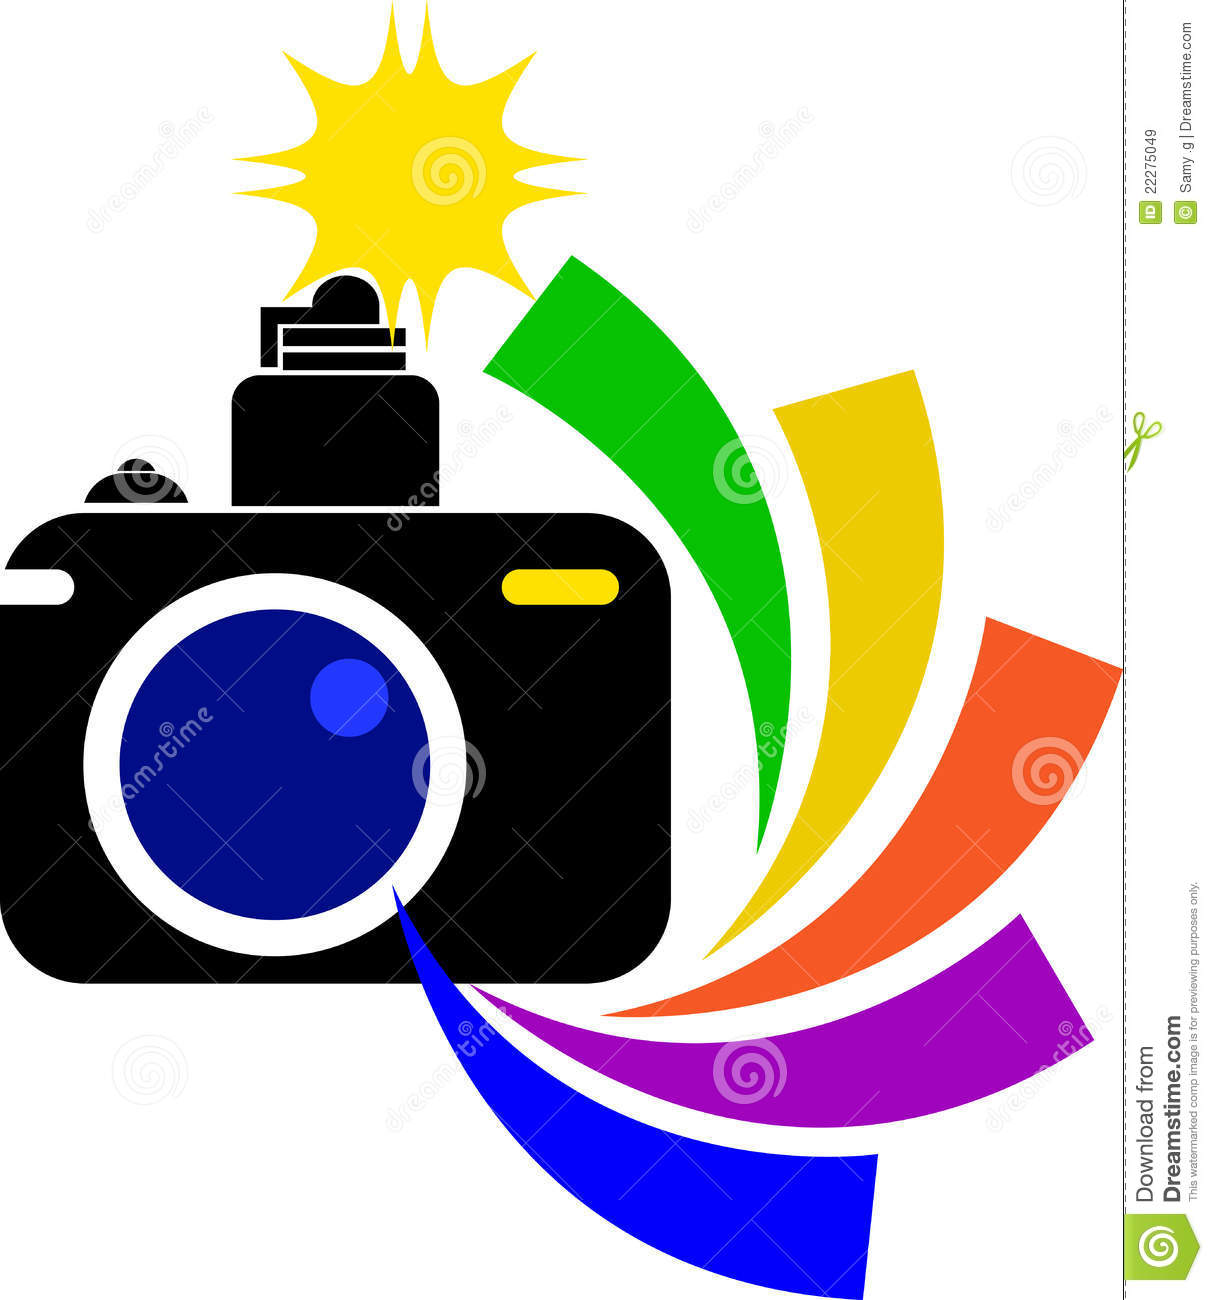 Camera logo stock vector. Illustration of body, cinema ...